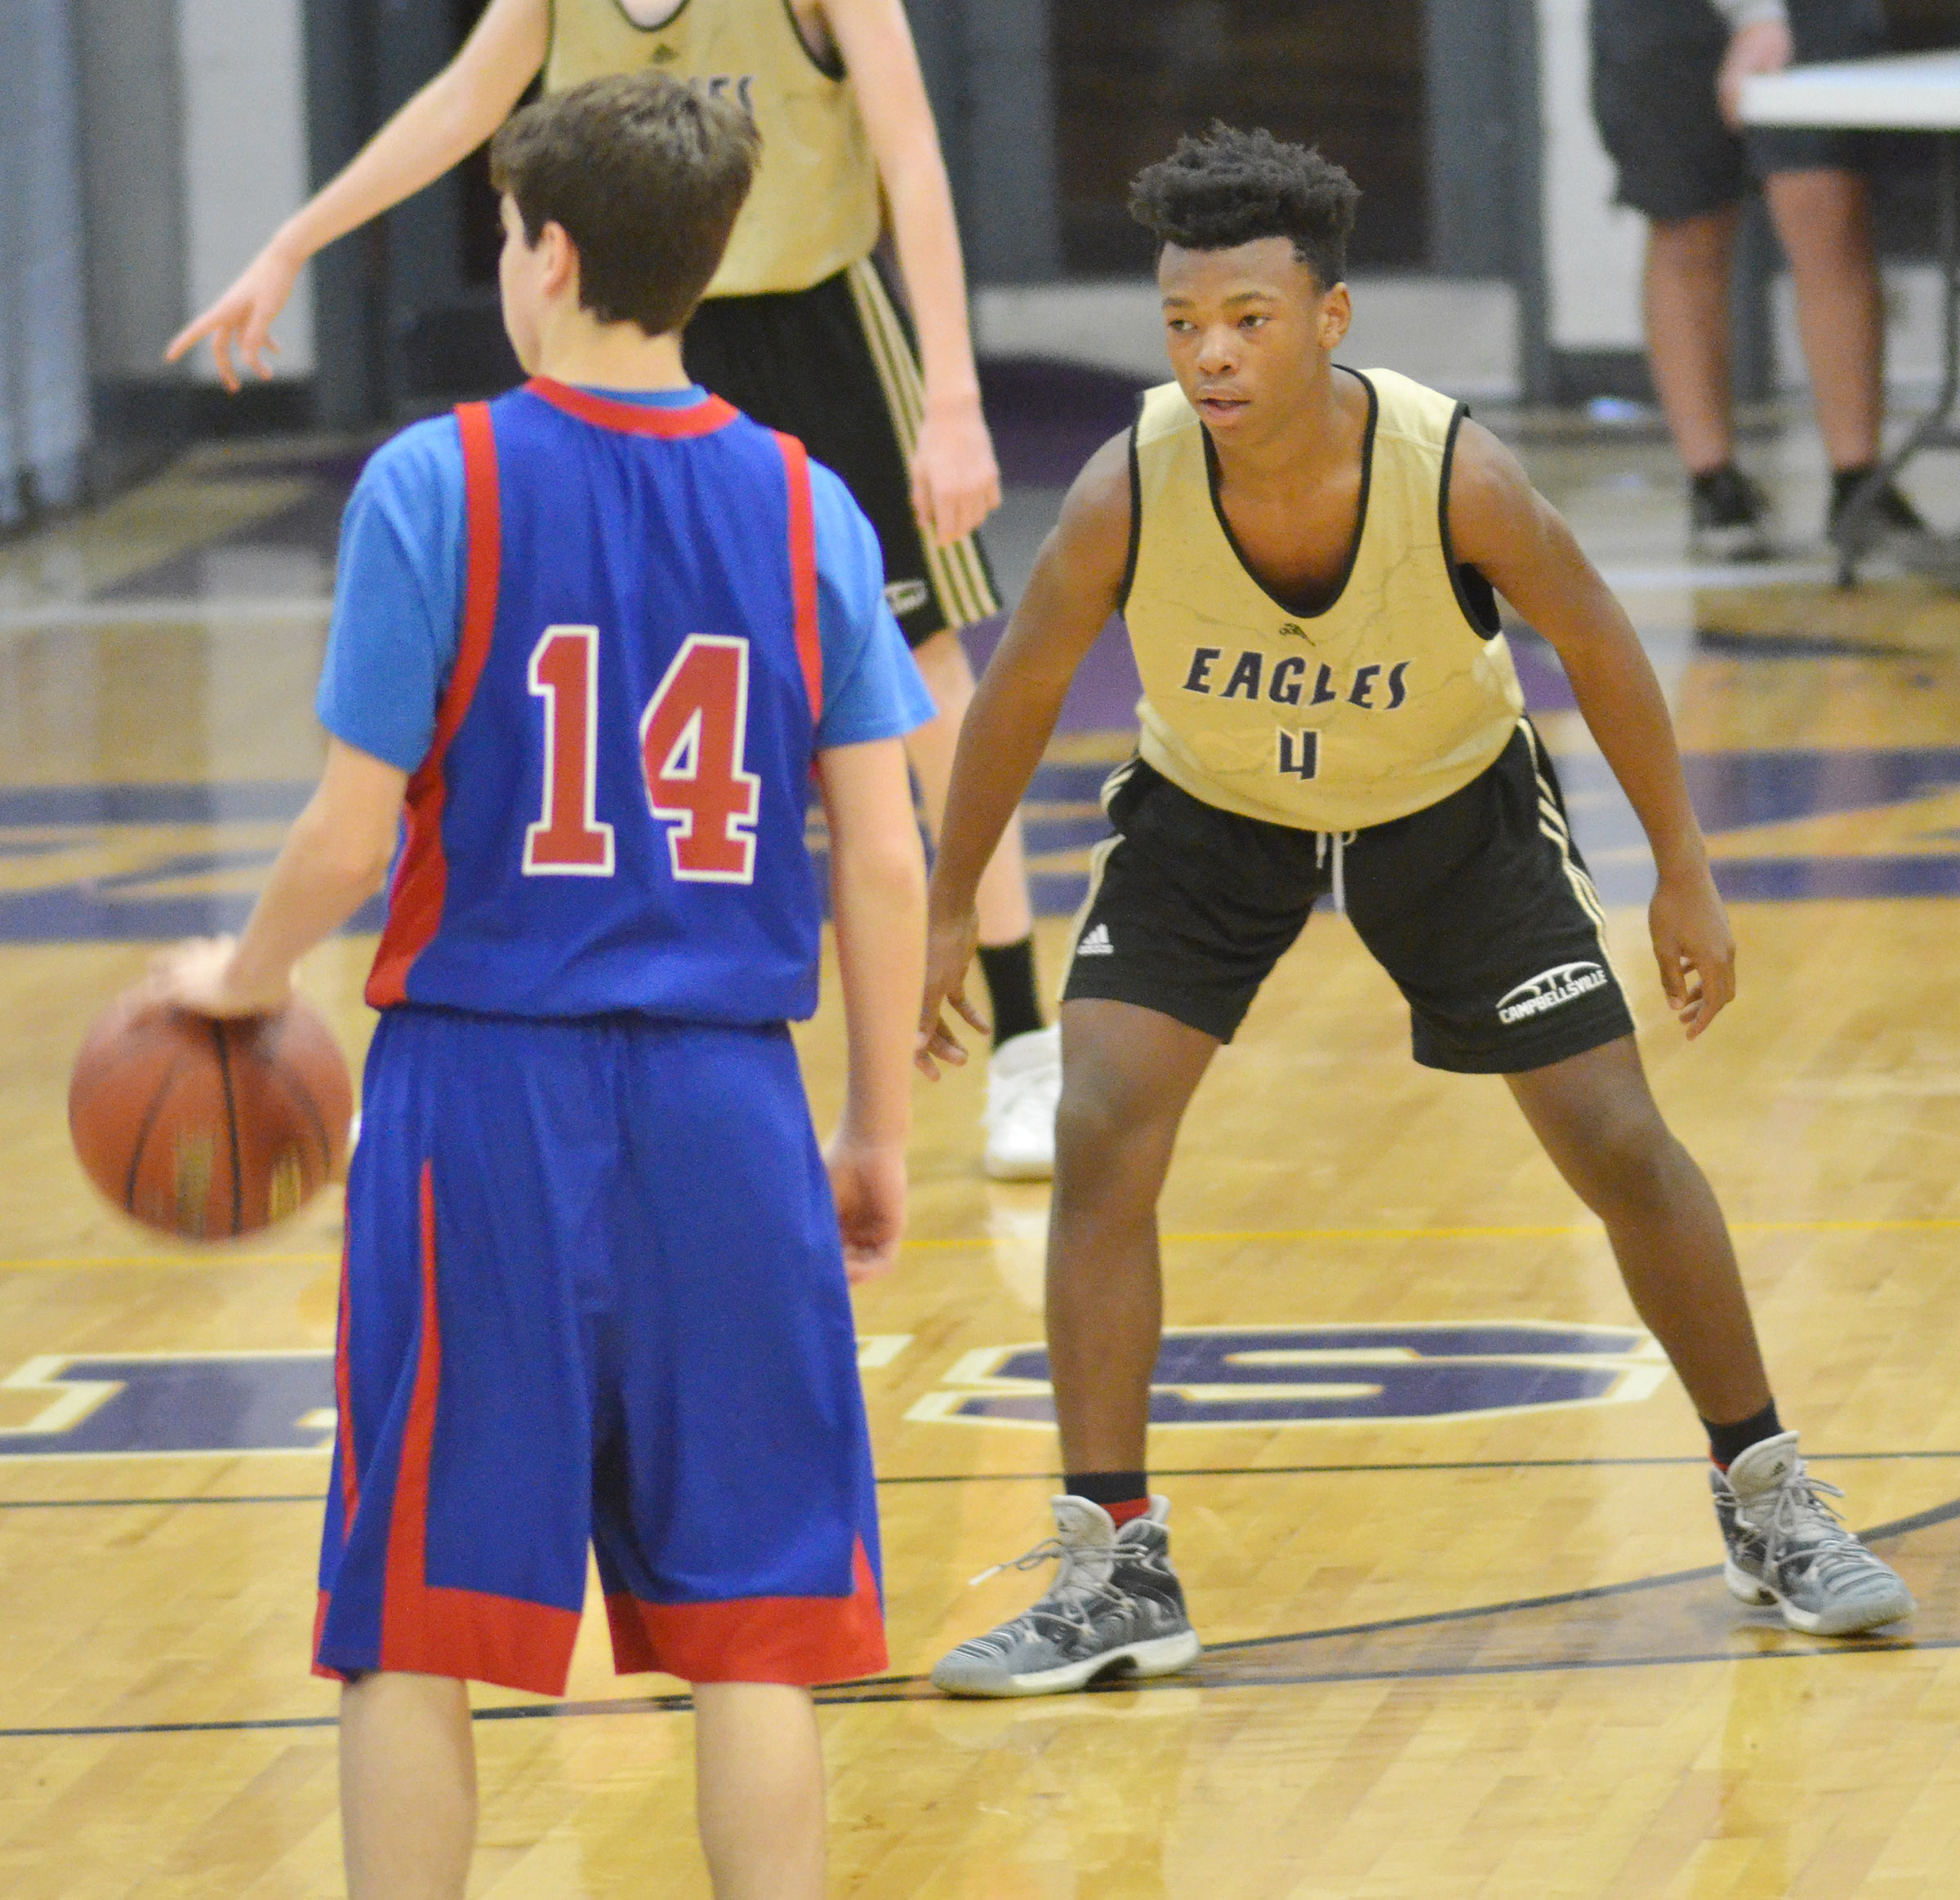 CHS freshman Sae'von Buckner plays defense.